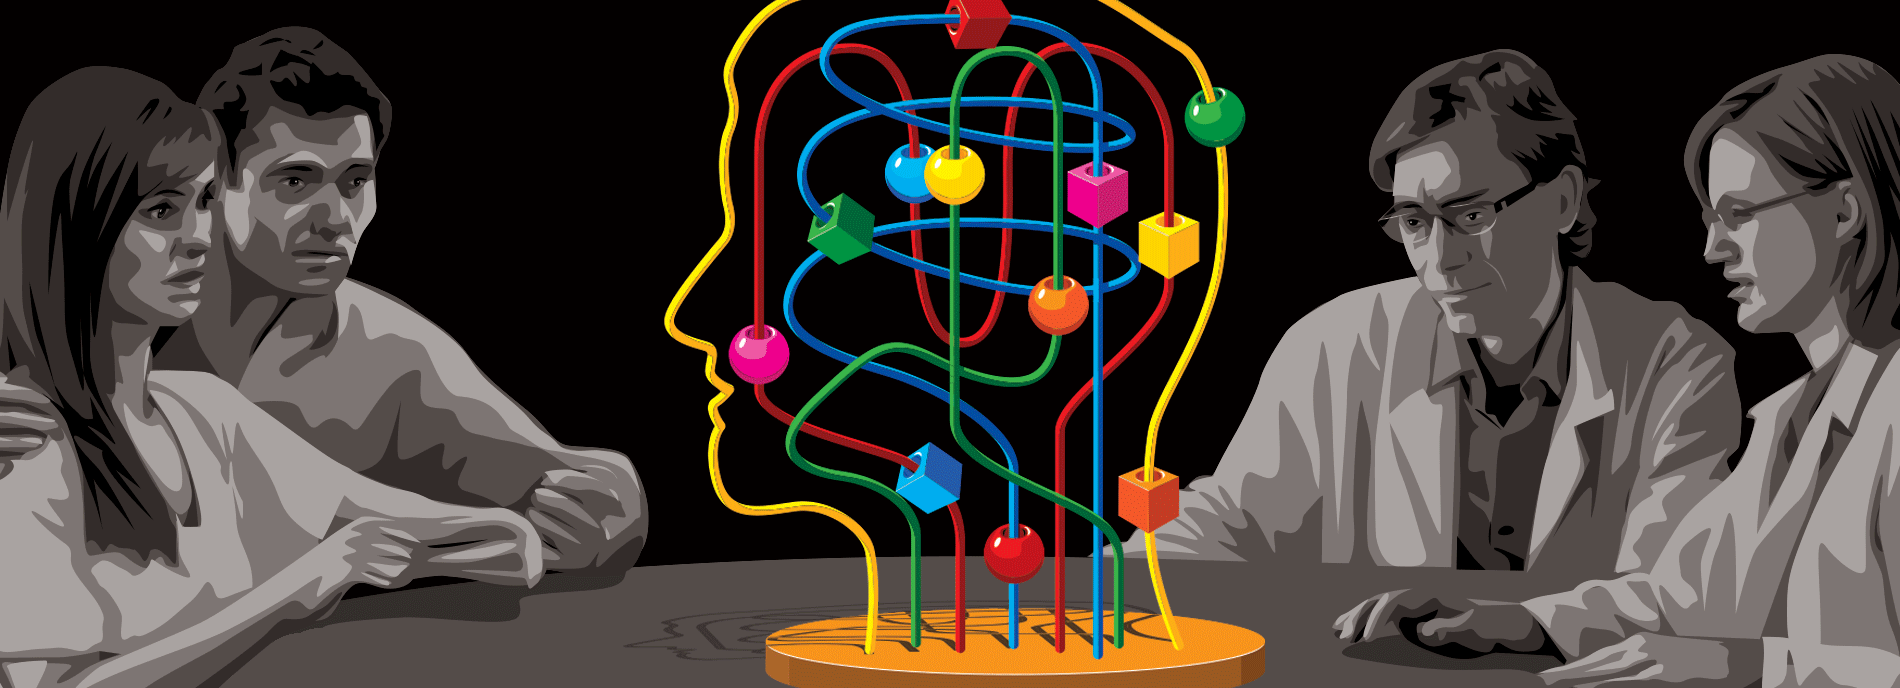 Scientists gather around a puzzle shaped like a human head.